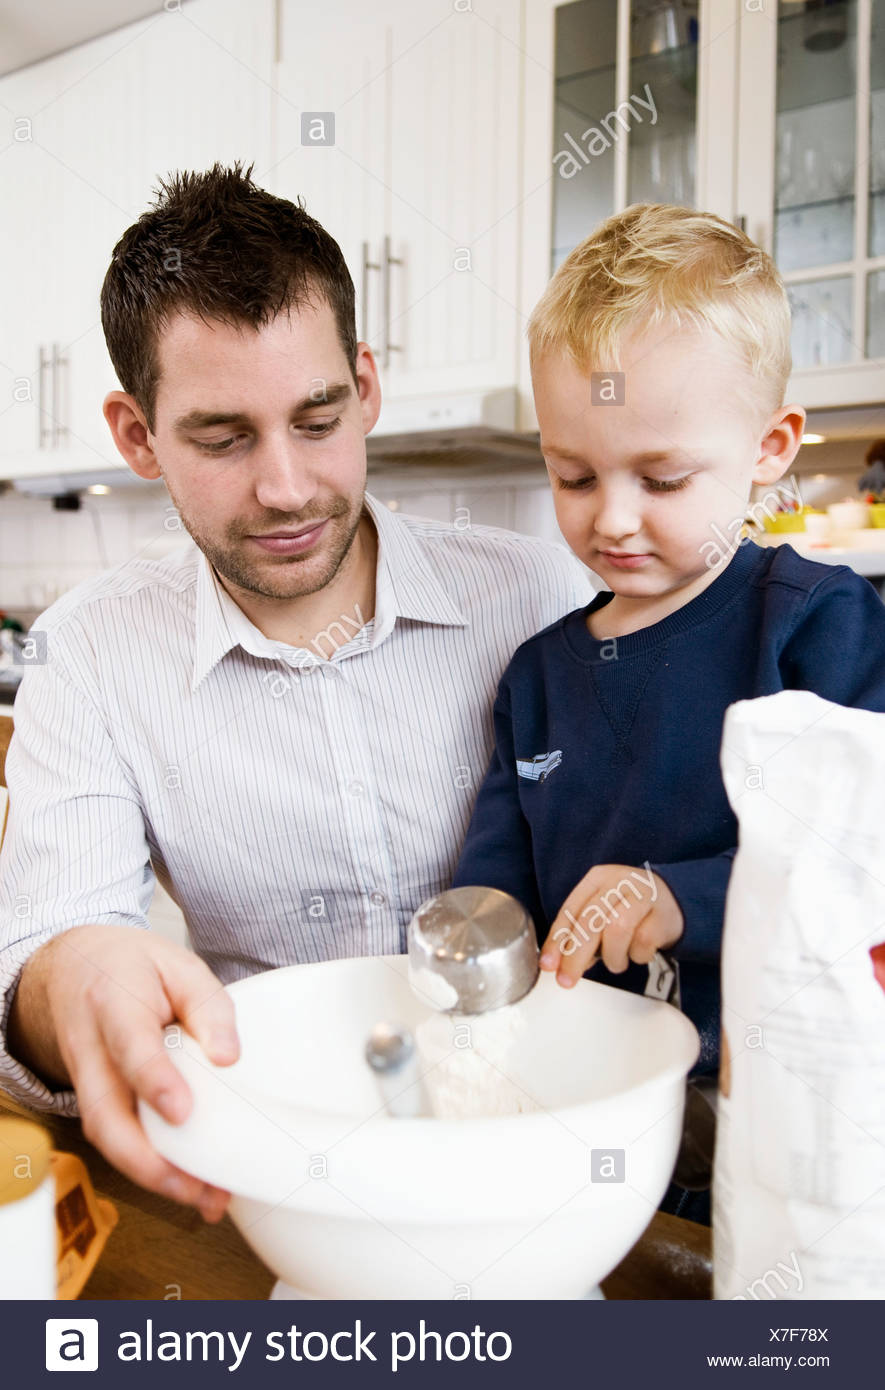 Father and son baking - Stock Image